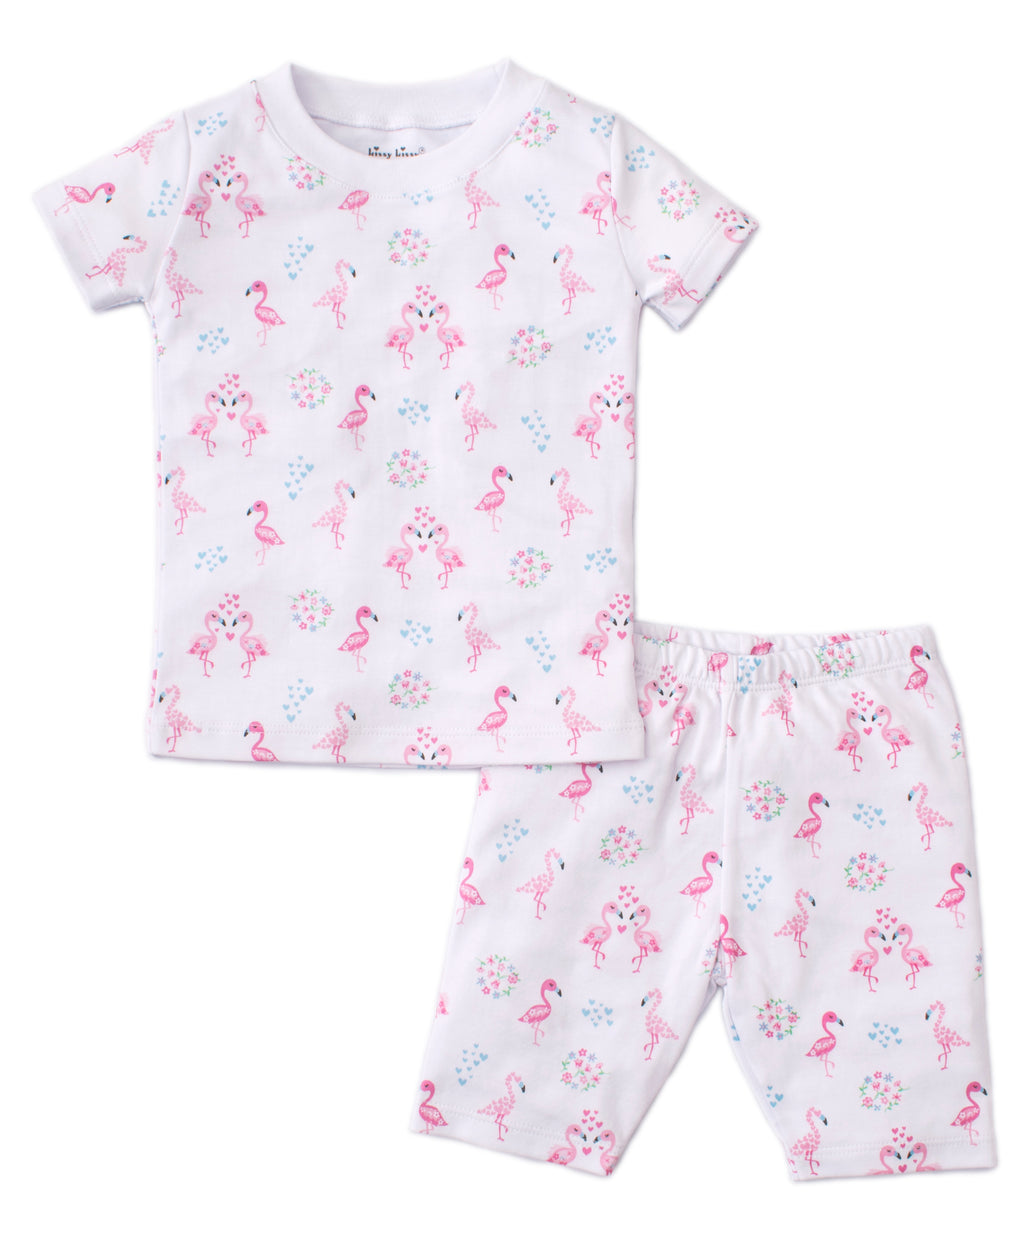 Flowering Flamingos Short Toddler Pajama Set